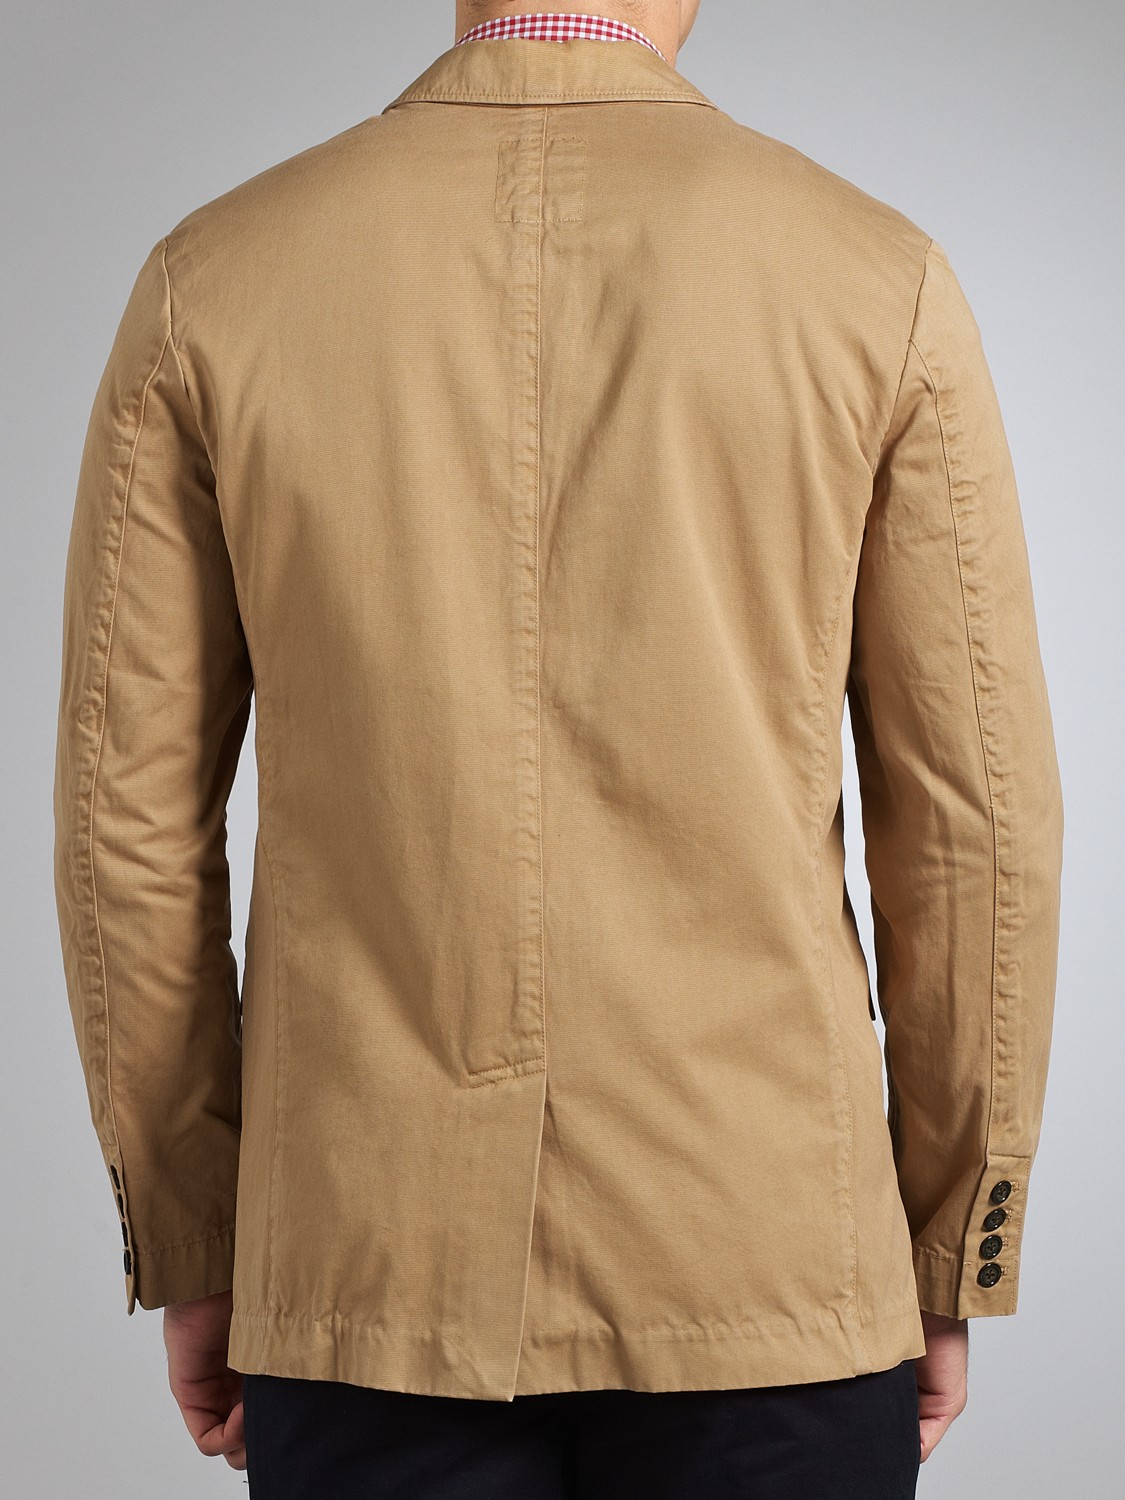 Grayers Westhorn Blazer in Natural for Men